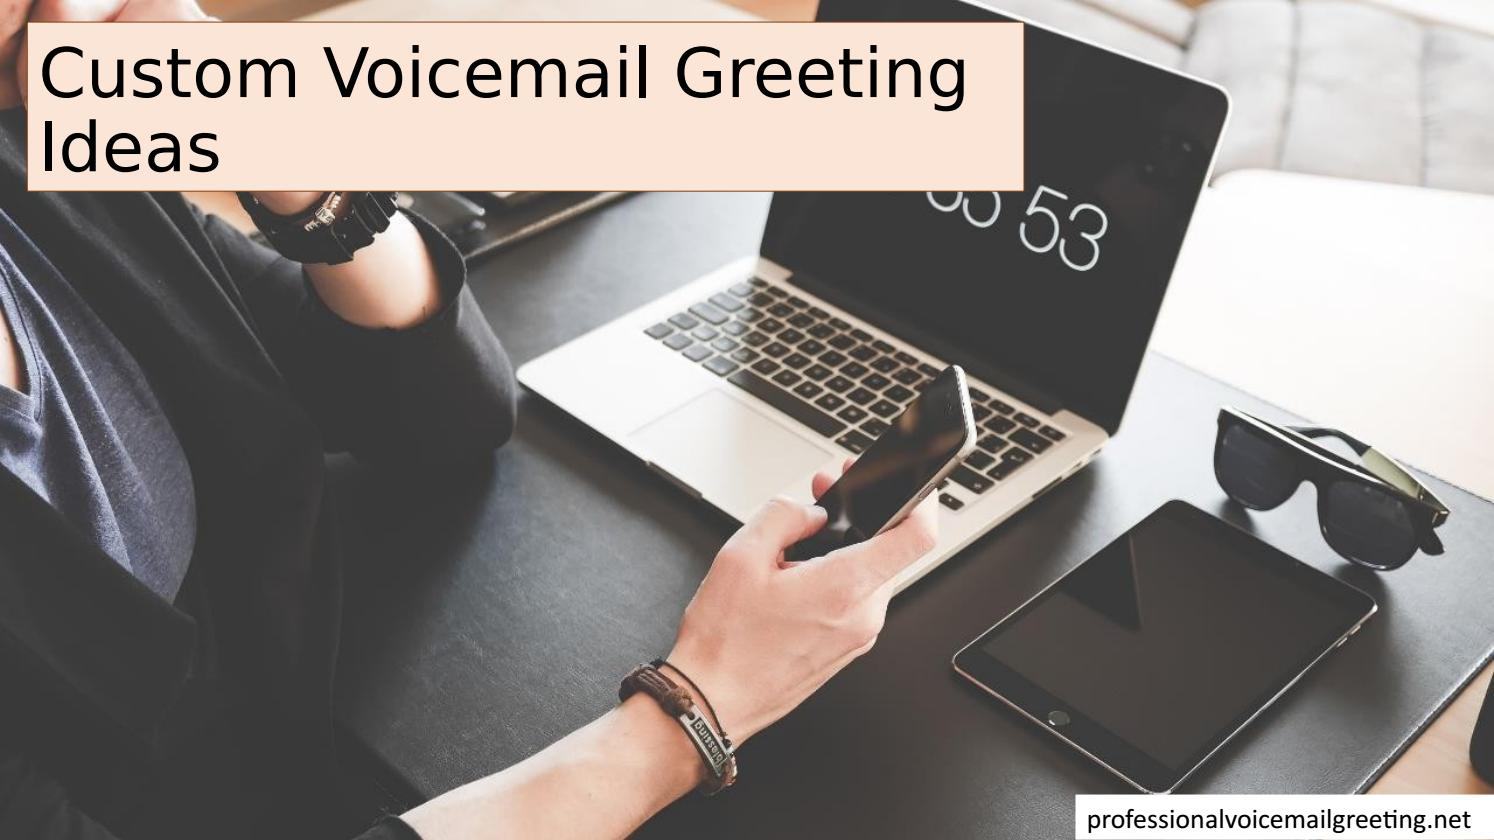 Custom Voicemail Greeting Ideas By Professional Voicemail Greeting